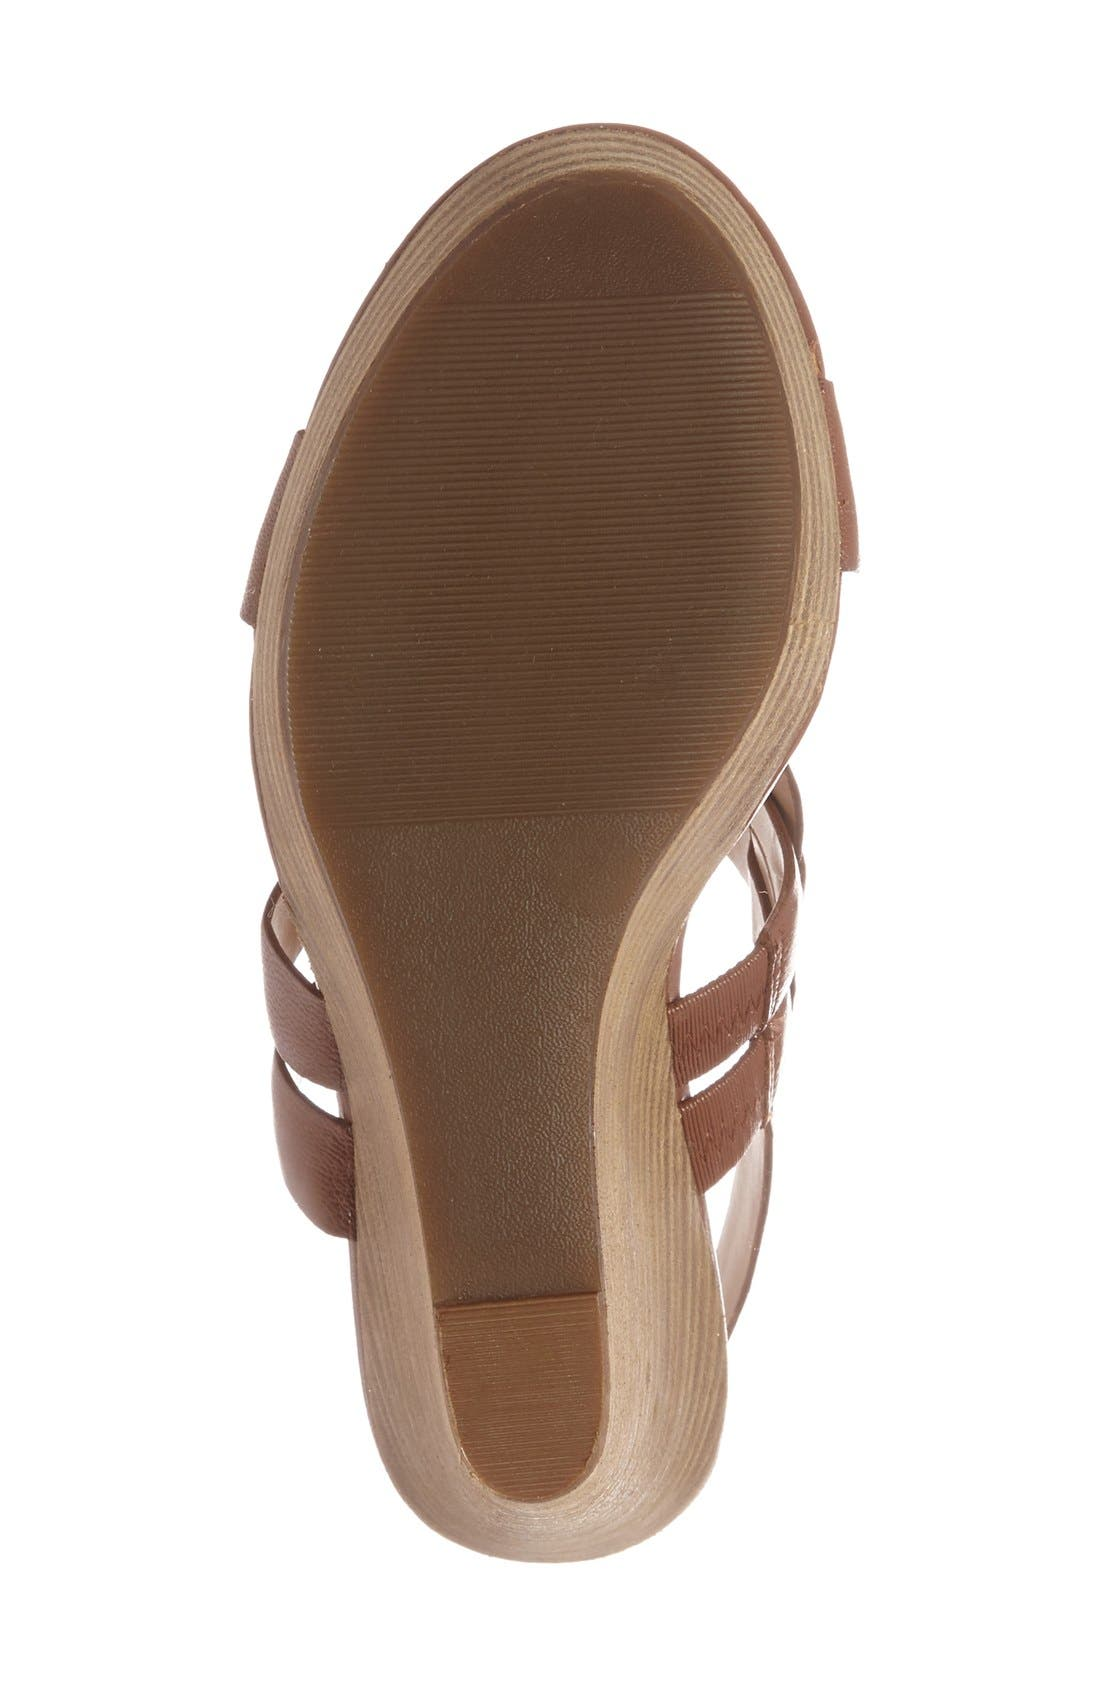 'Jenny' Slingback Wedge Sandal,                             Alternate thumbnail 4, color,                             Equestrian Tan